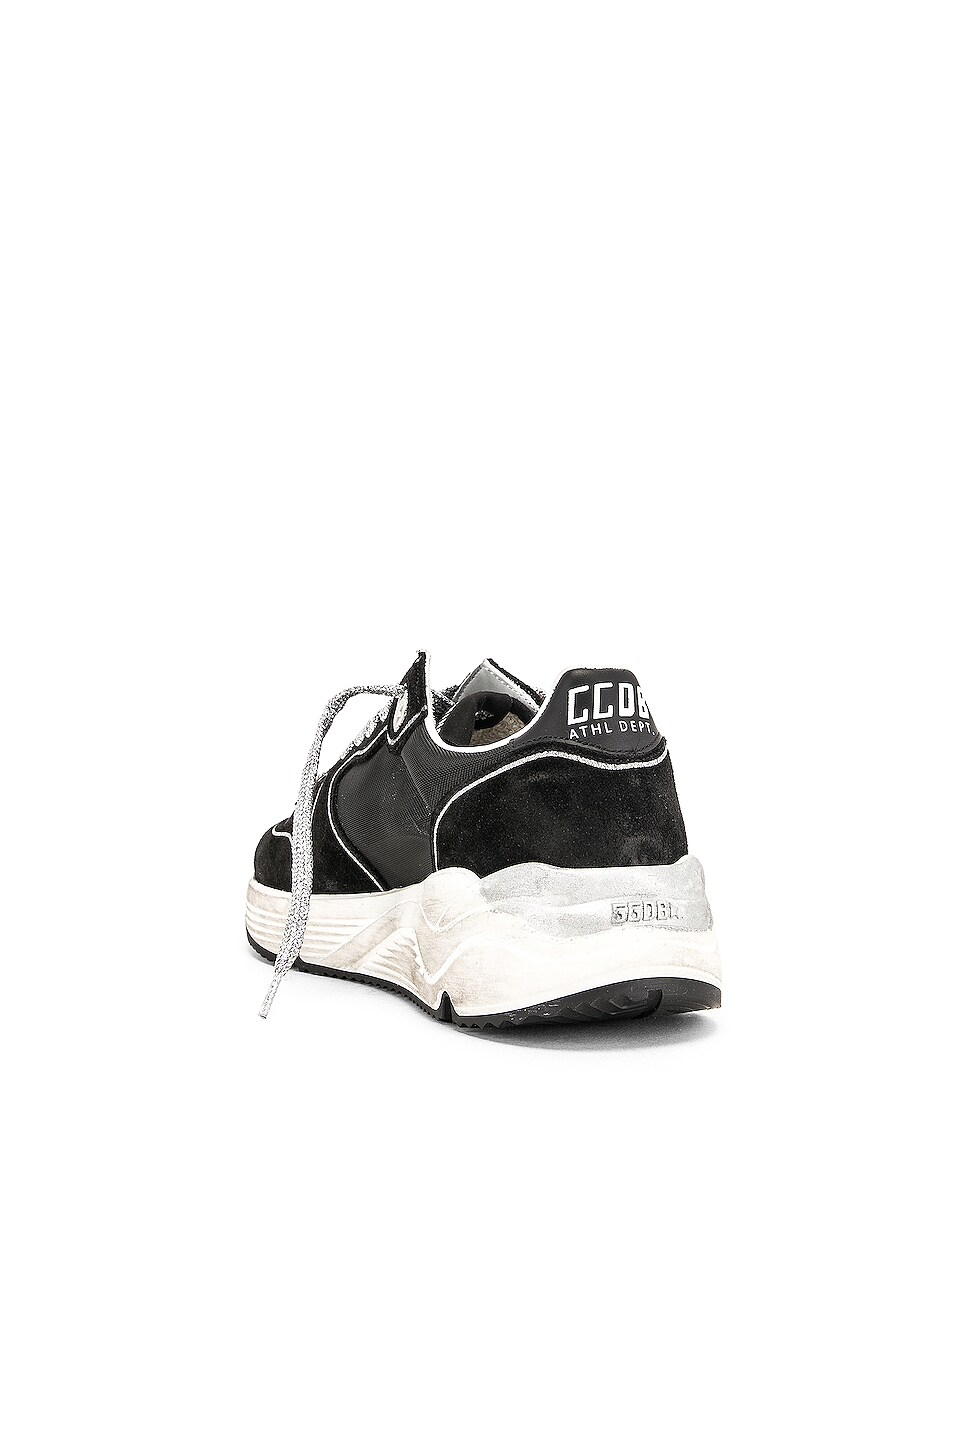 Image 3 of Golden Goose Running Sole Sneakers in Black & Red Star